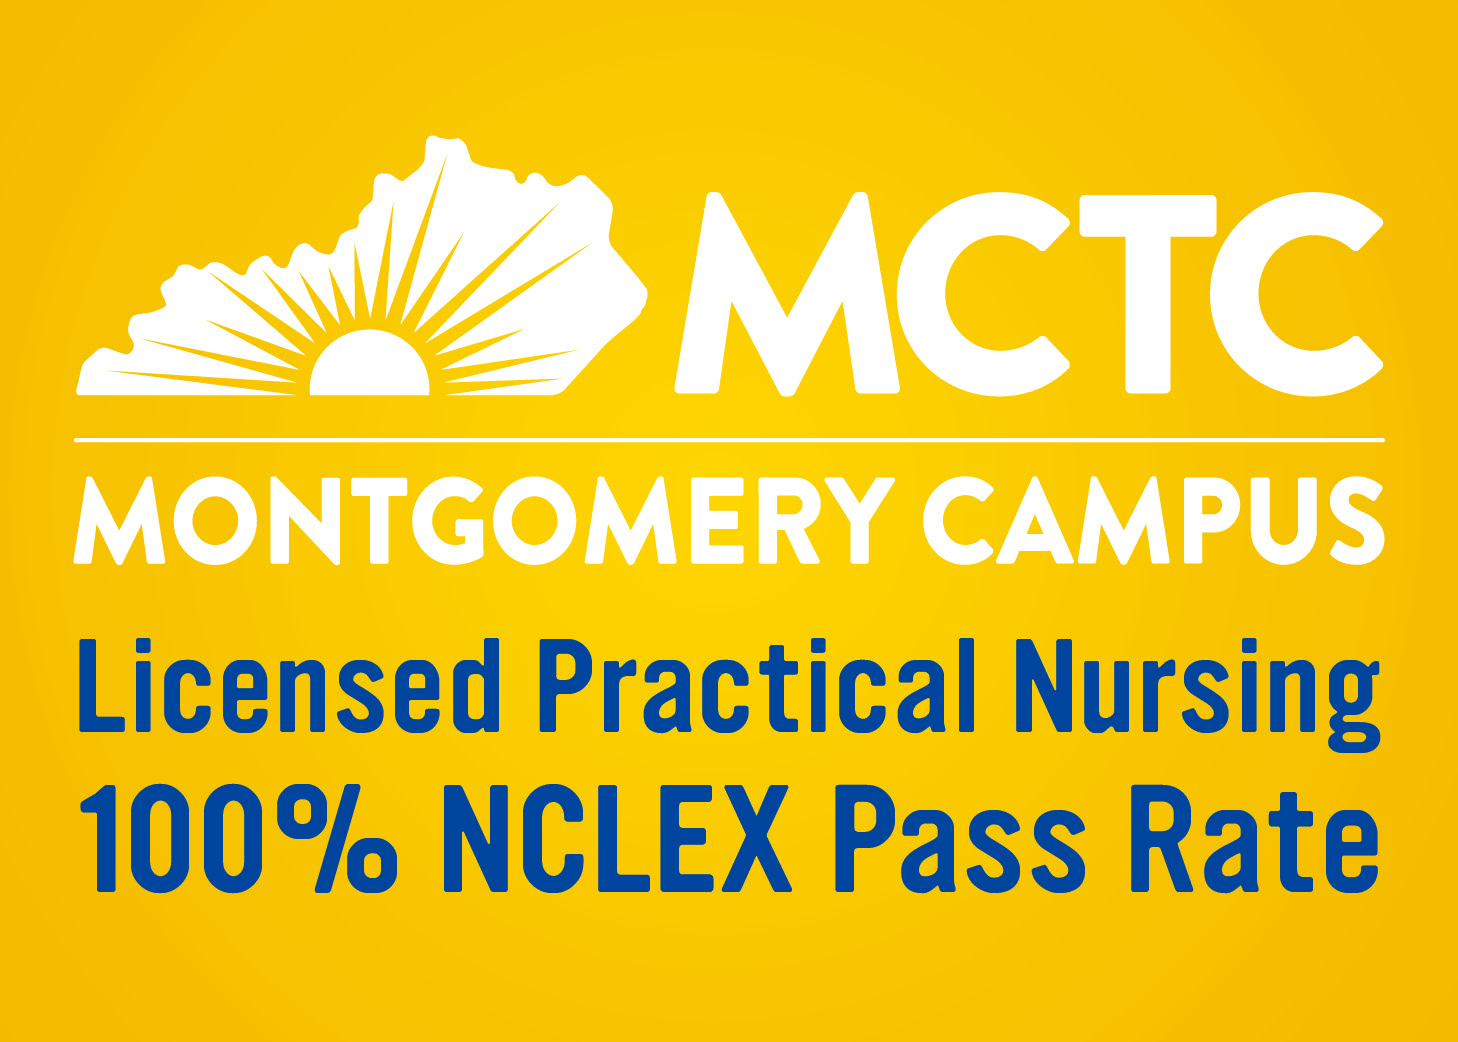 MCTC Montgomery Campus LPN 100% Pass Rate